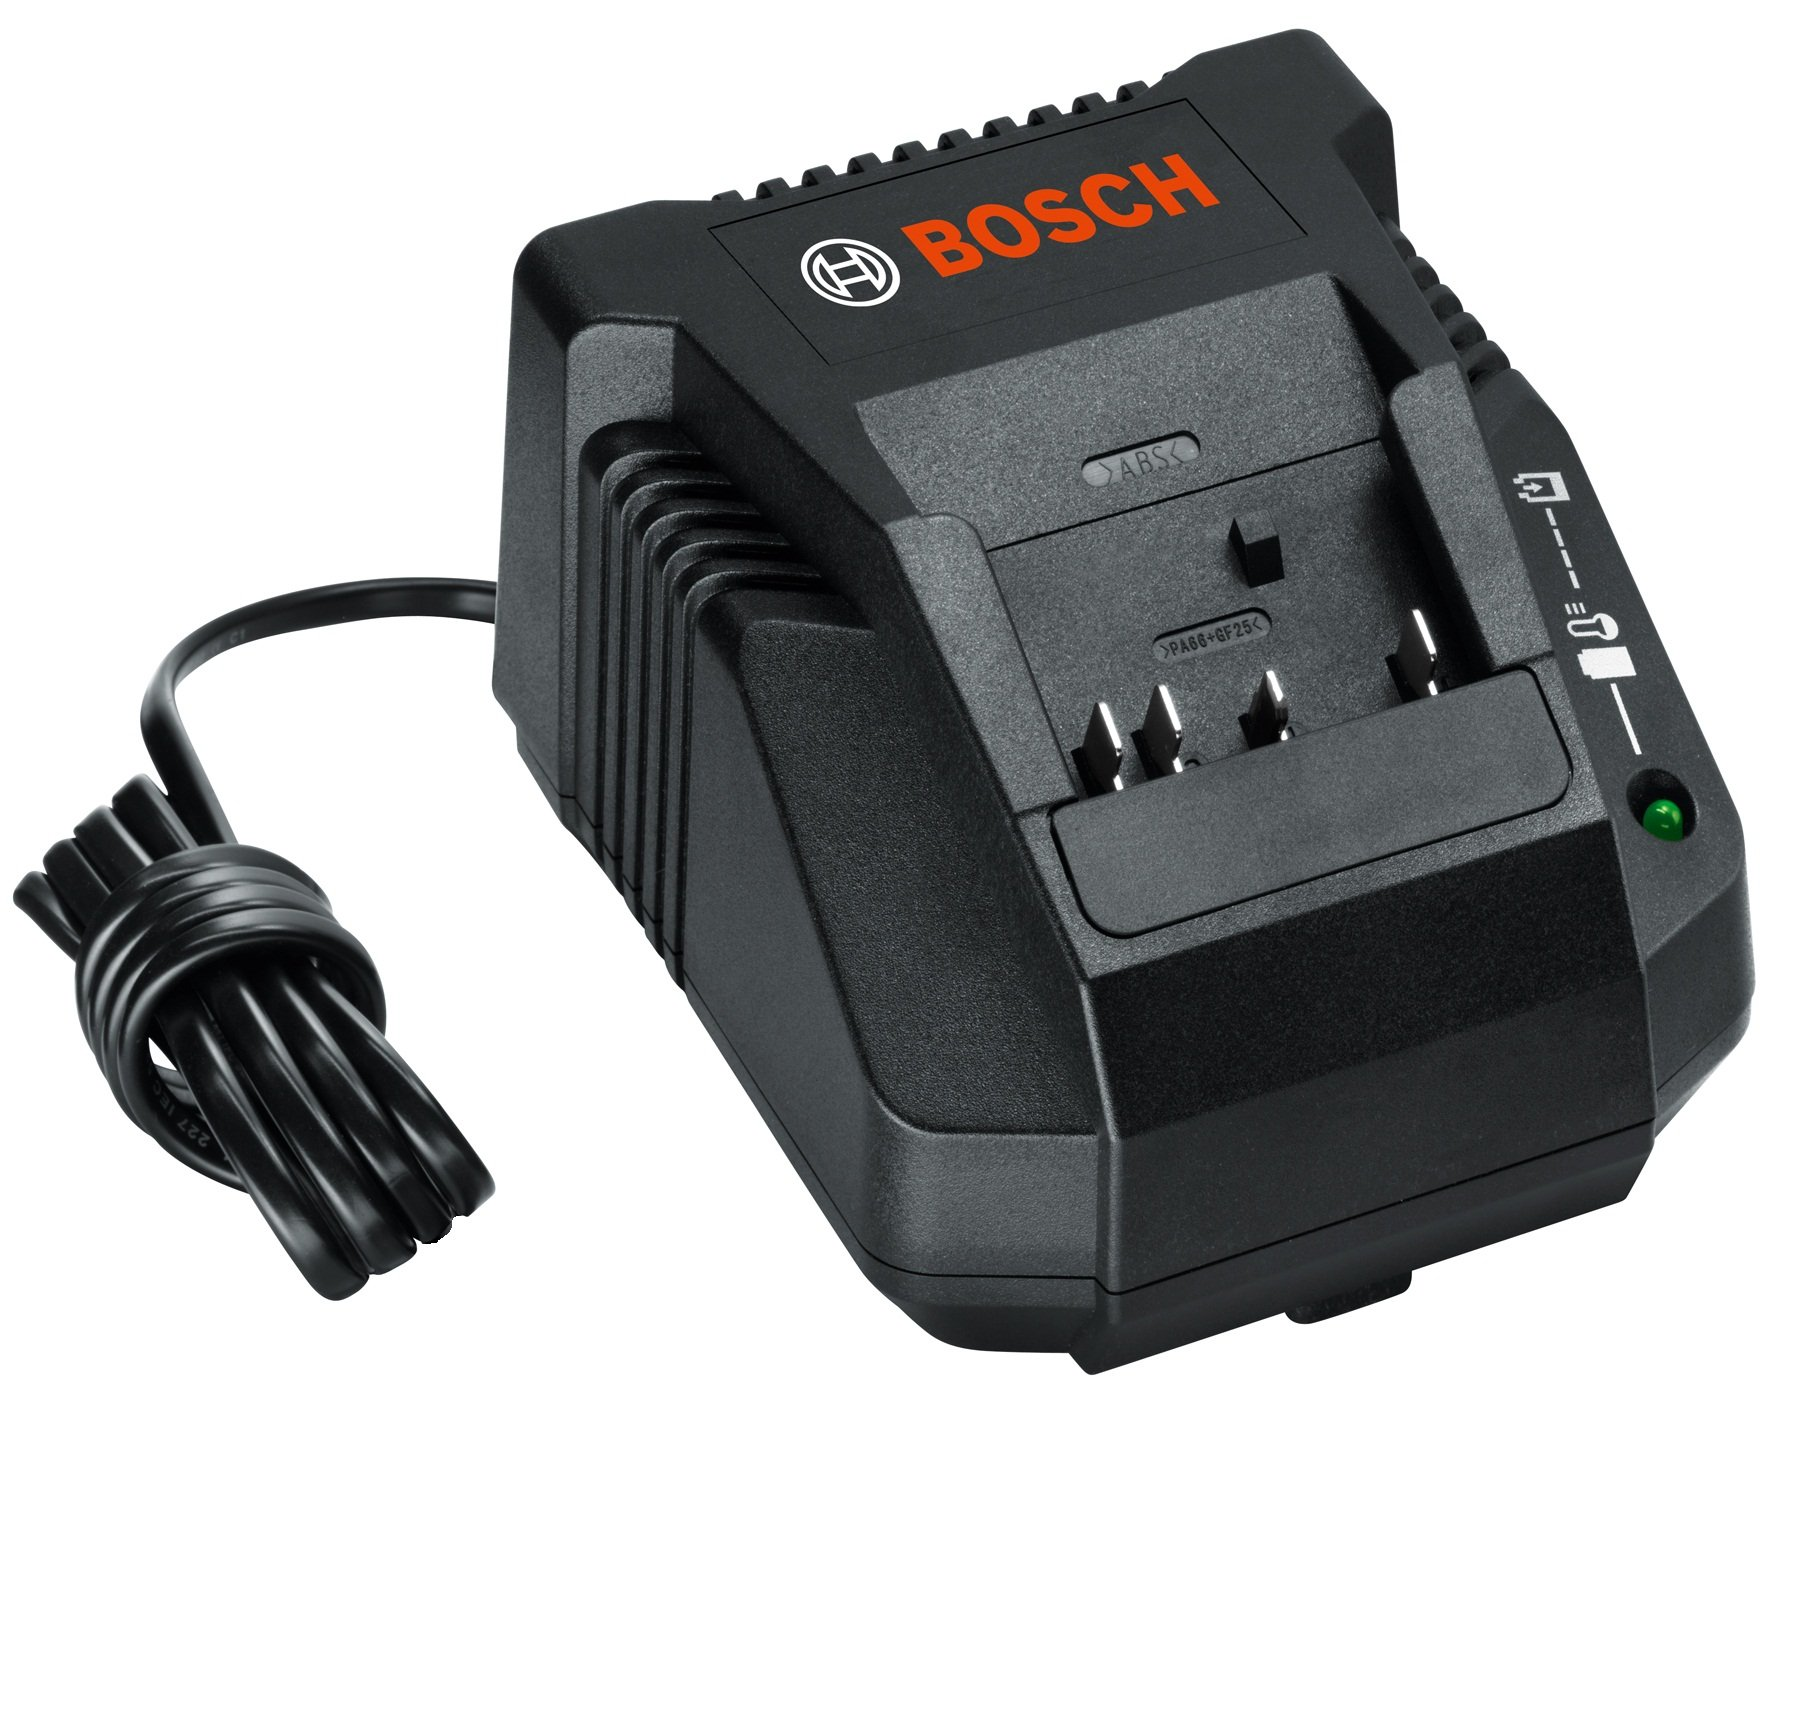 Bosch BC660 18-volt Lithium-Ion Battery Charger